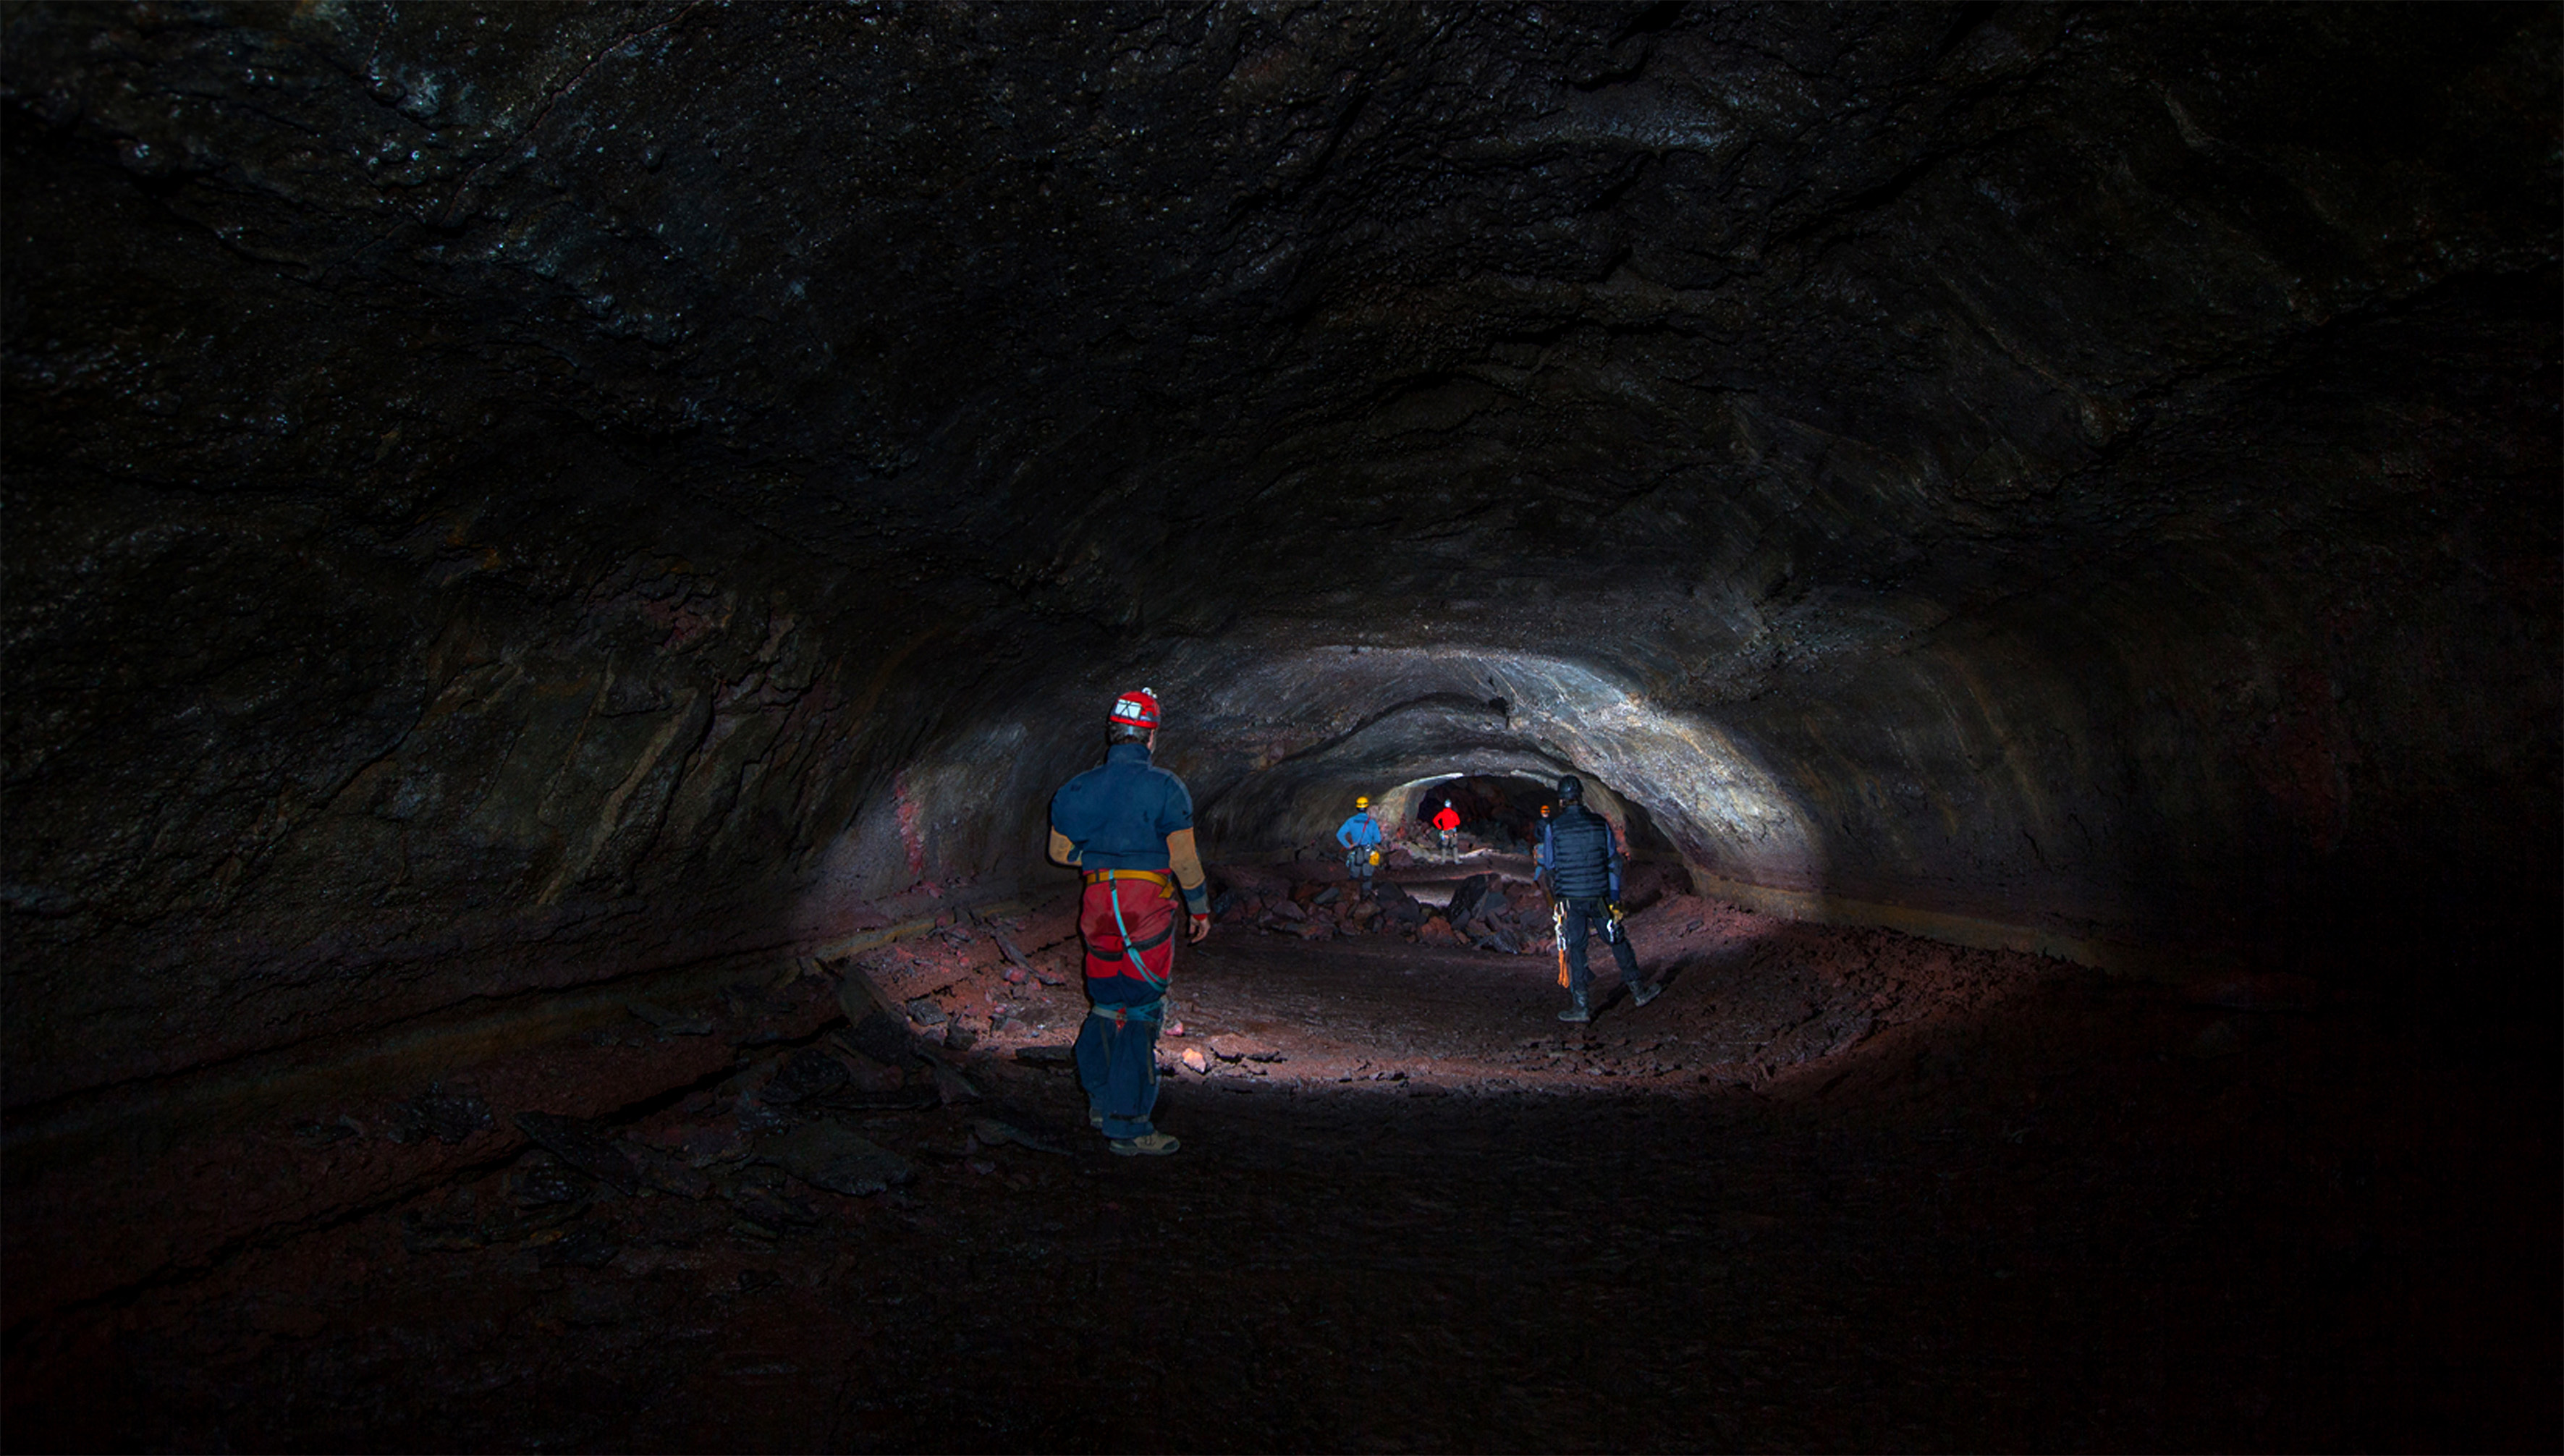 Lava cave photo by Josh Hydeman/Caters News